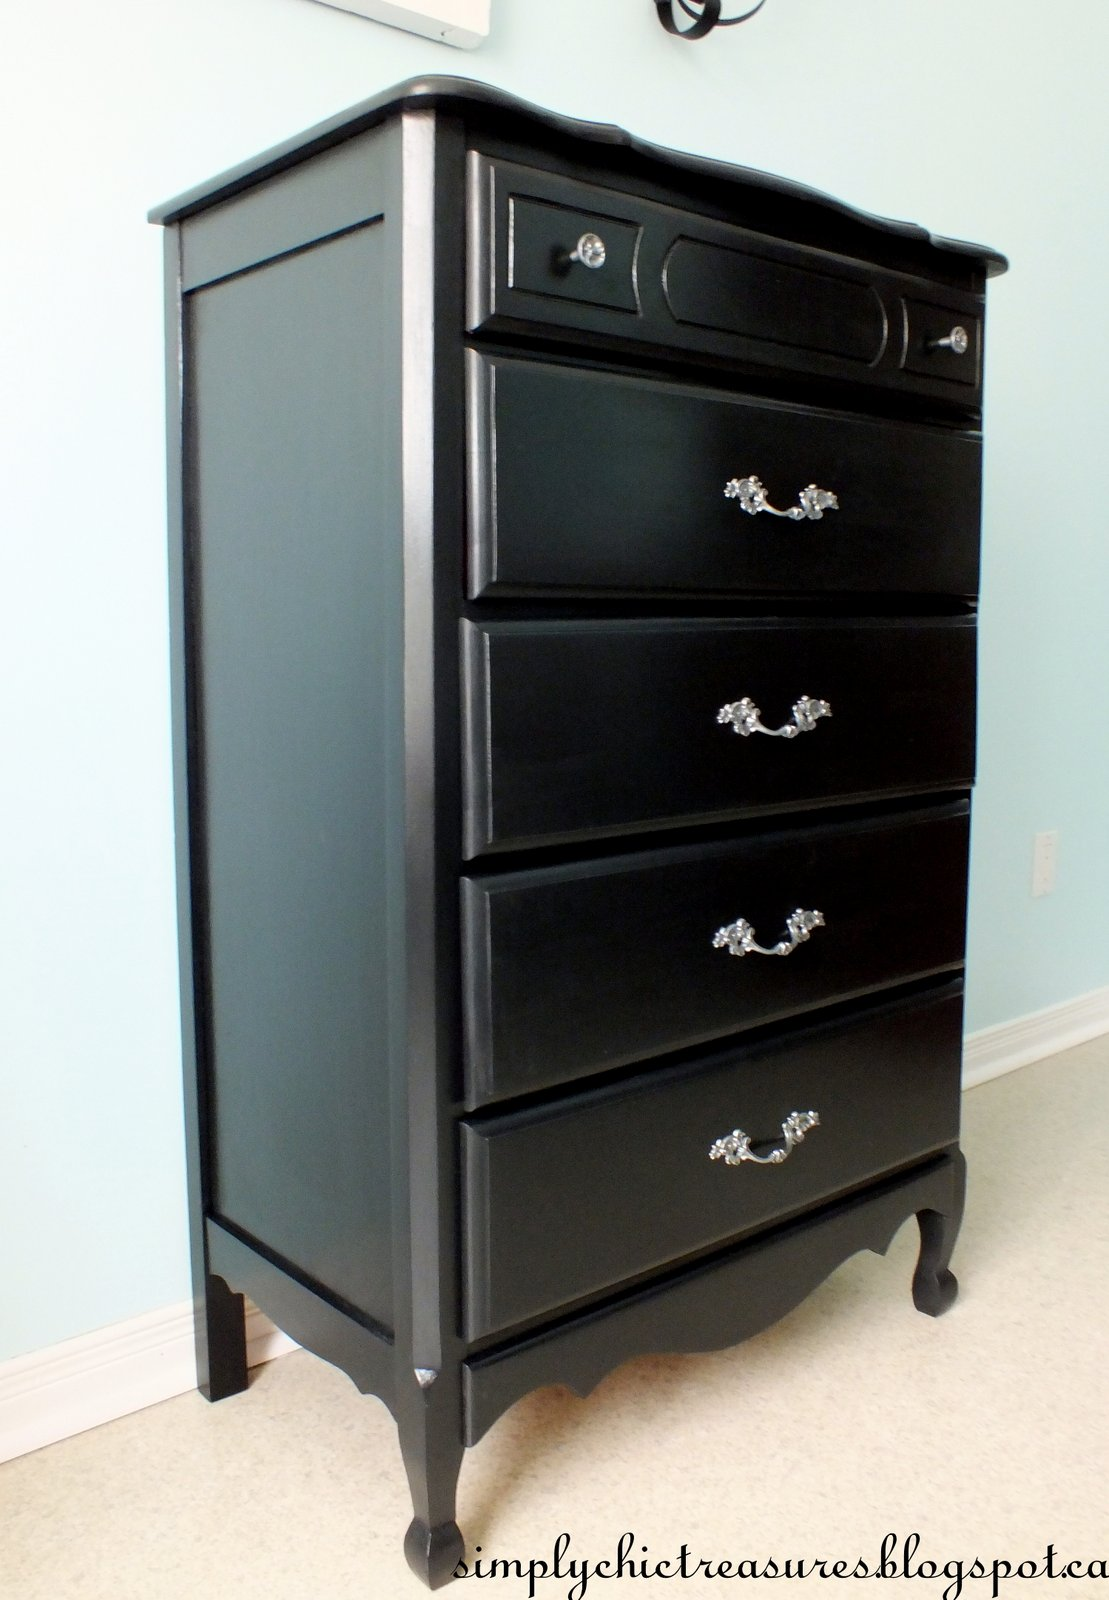 simply chic treasures: A Black French Provincial Dresser ...